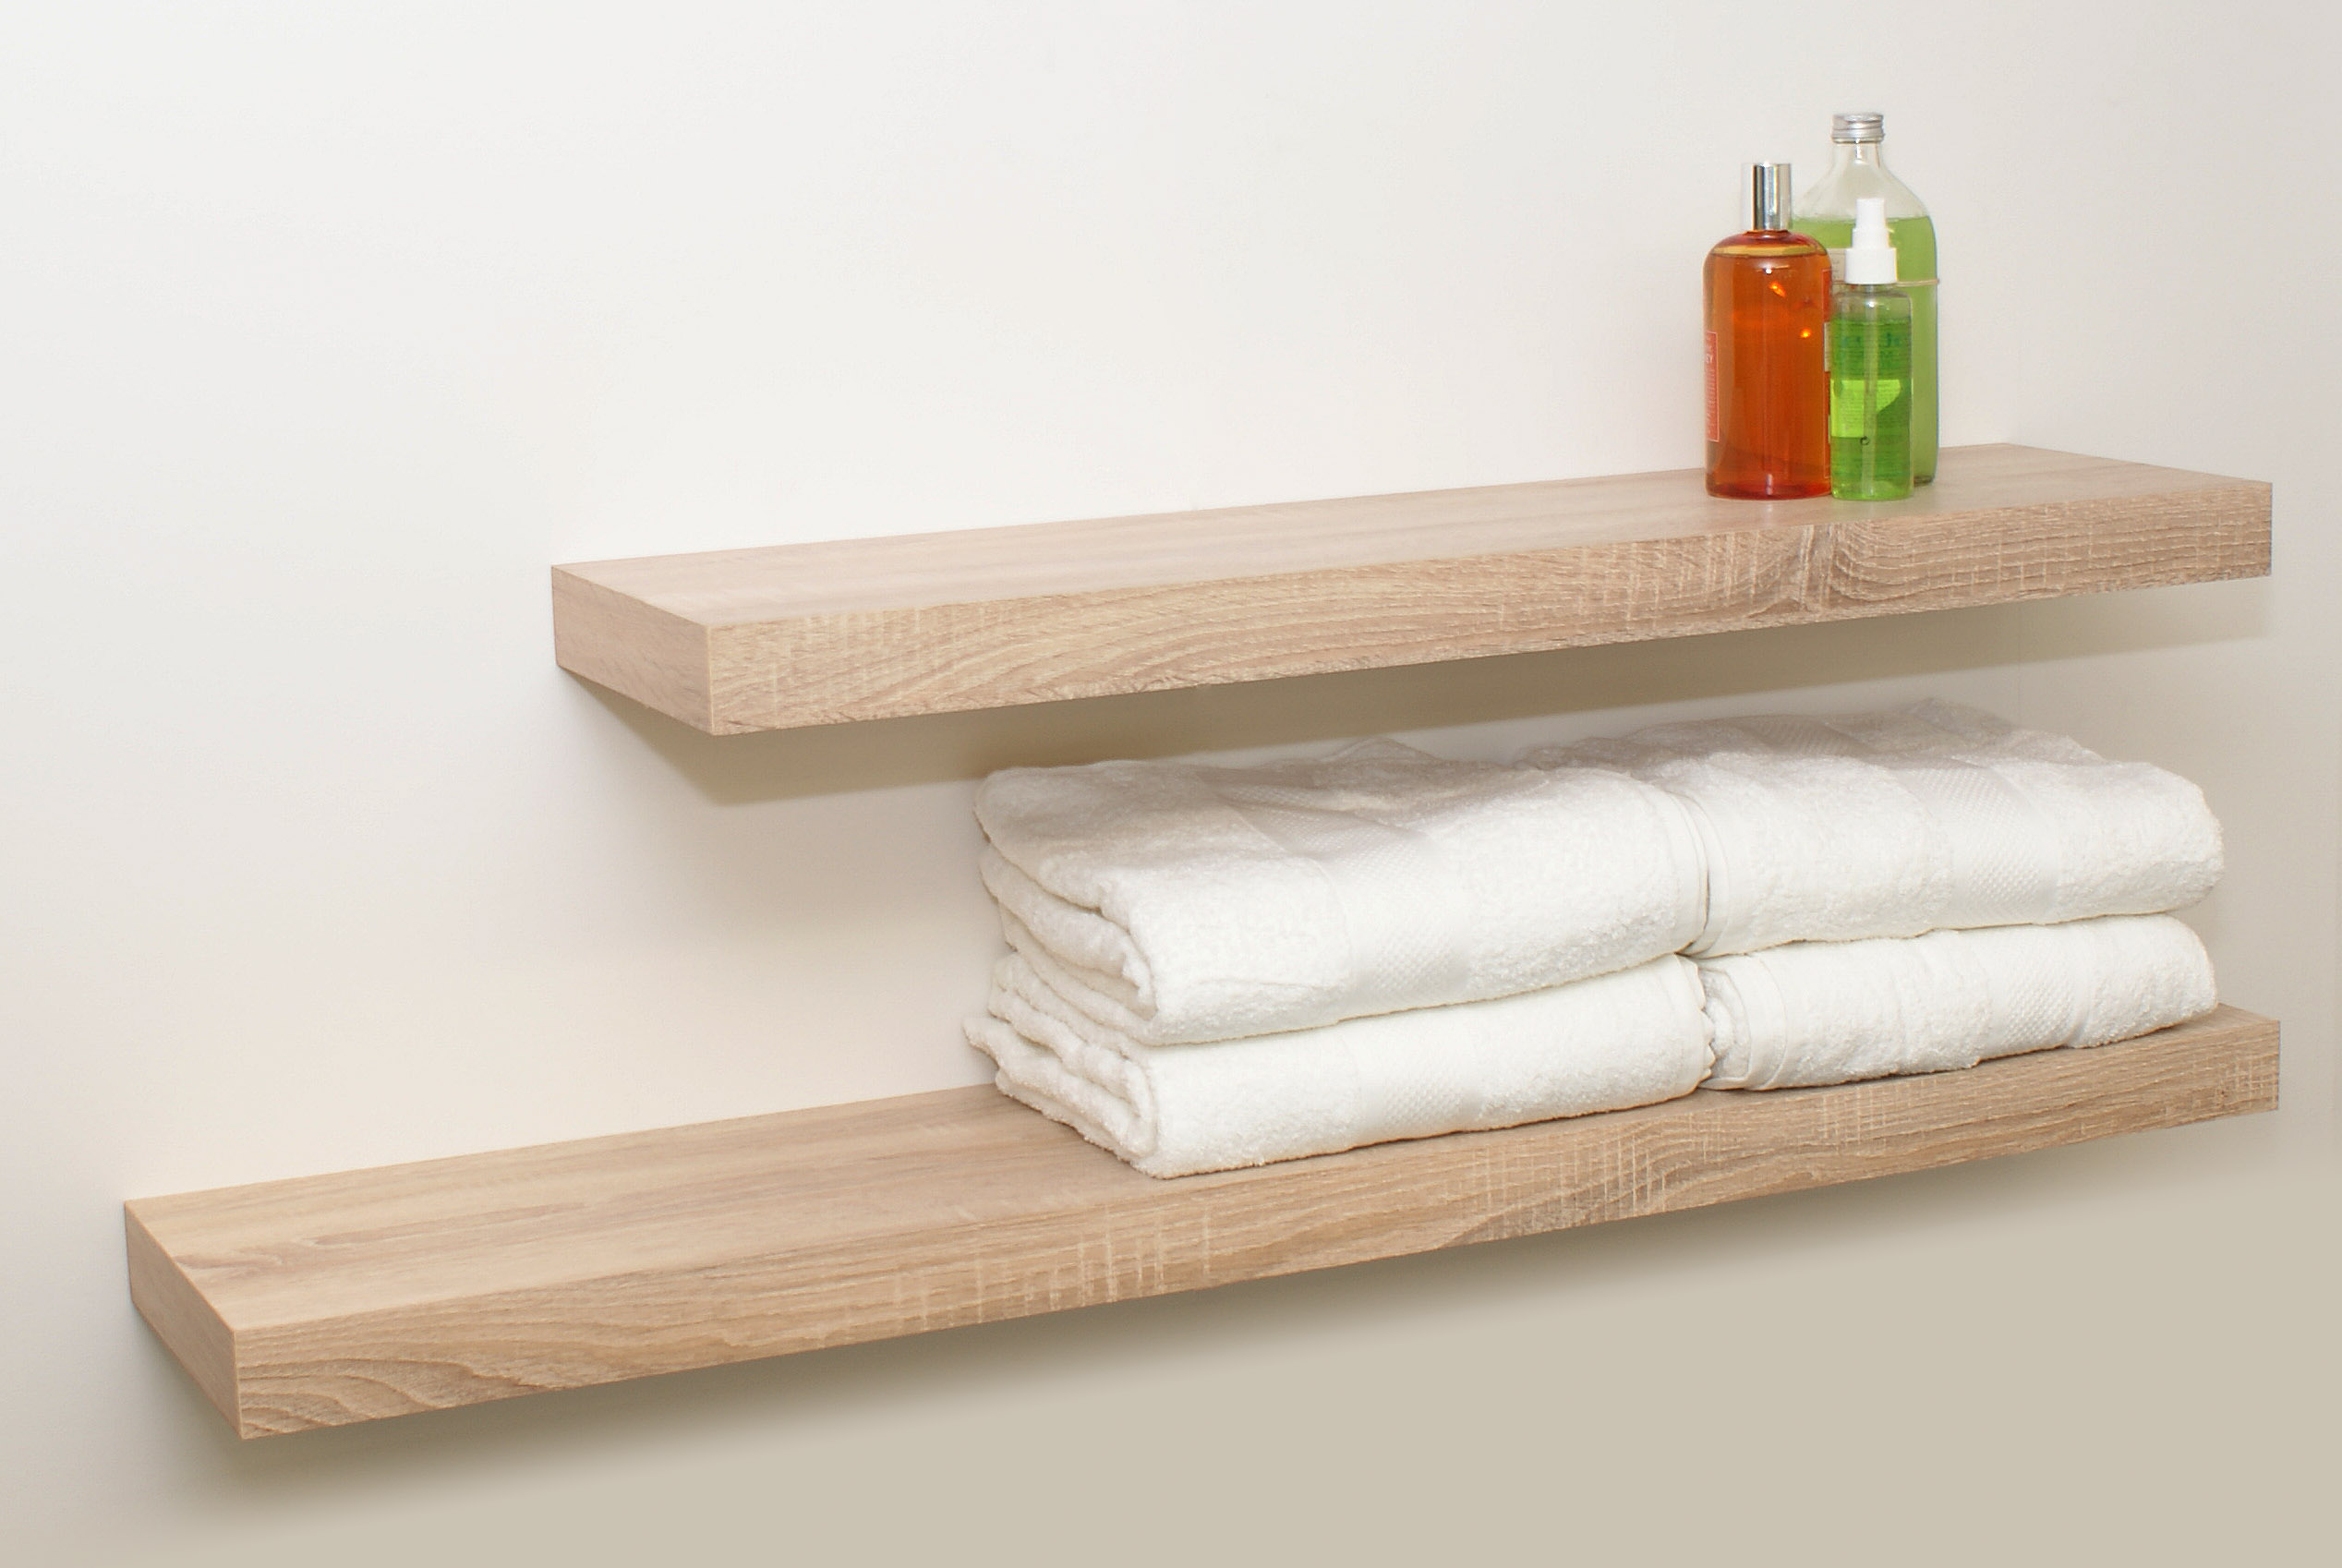 Shop / Floating Shelves / 50mm Thick Floating Shelves